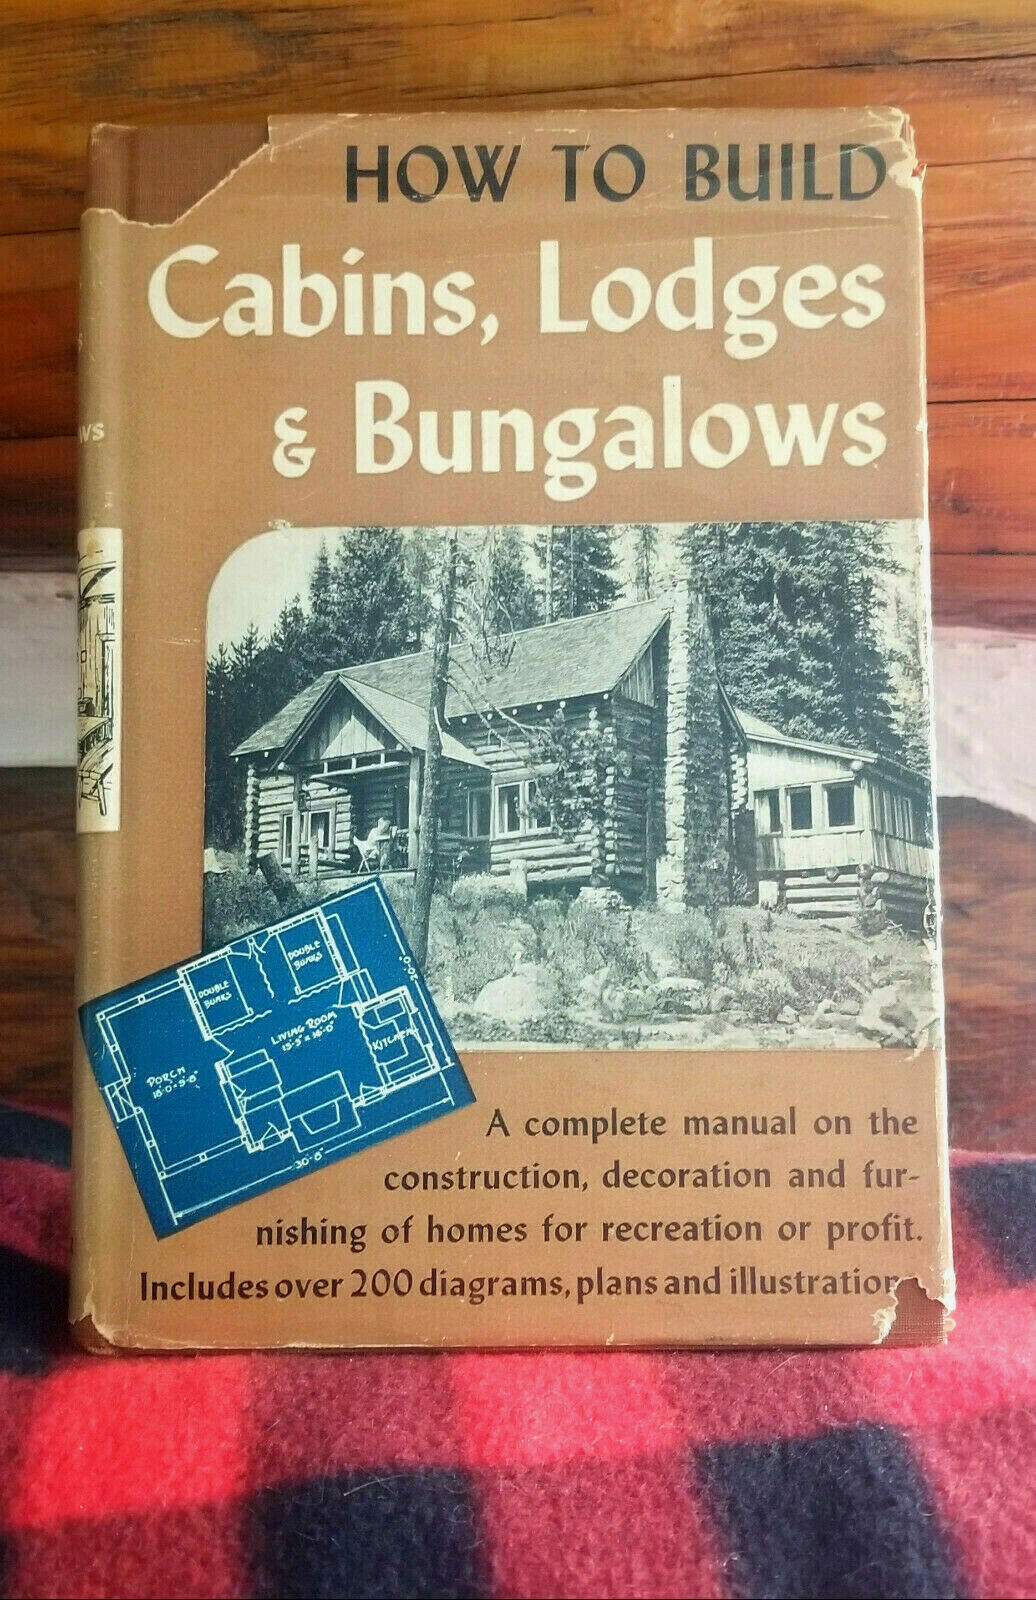 HOW TO BUILD CABINS, LODGES & BUNGALOWS 1946 construction to